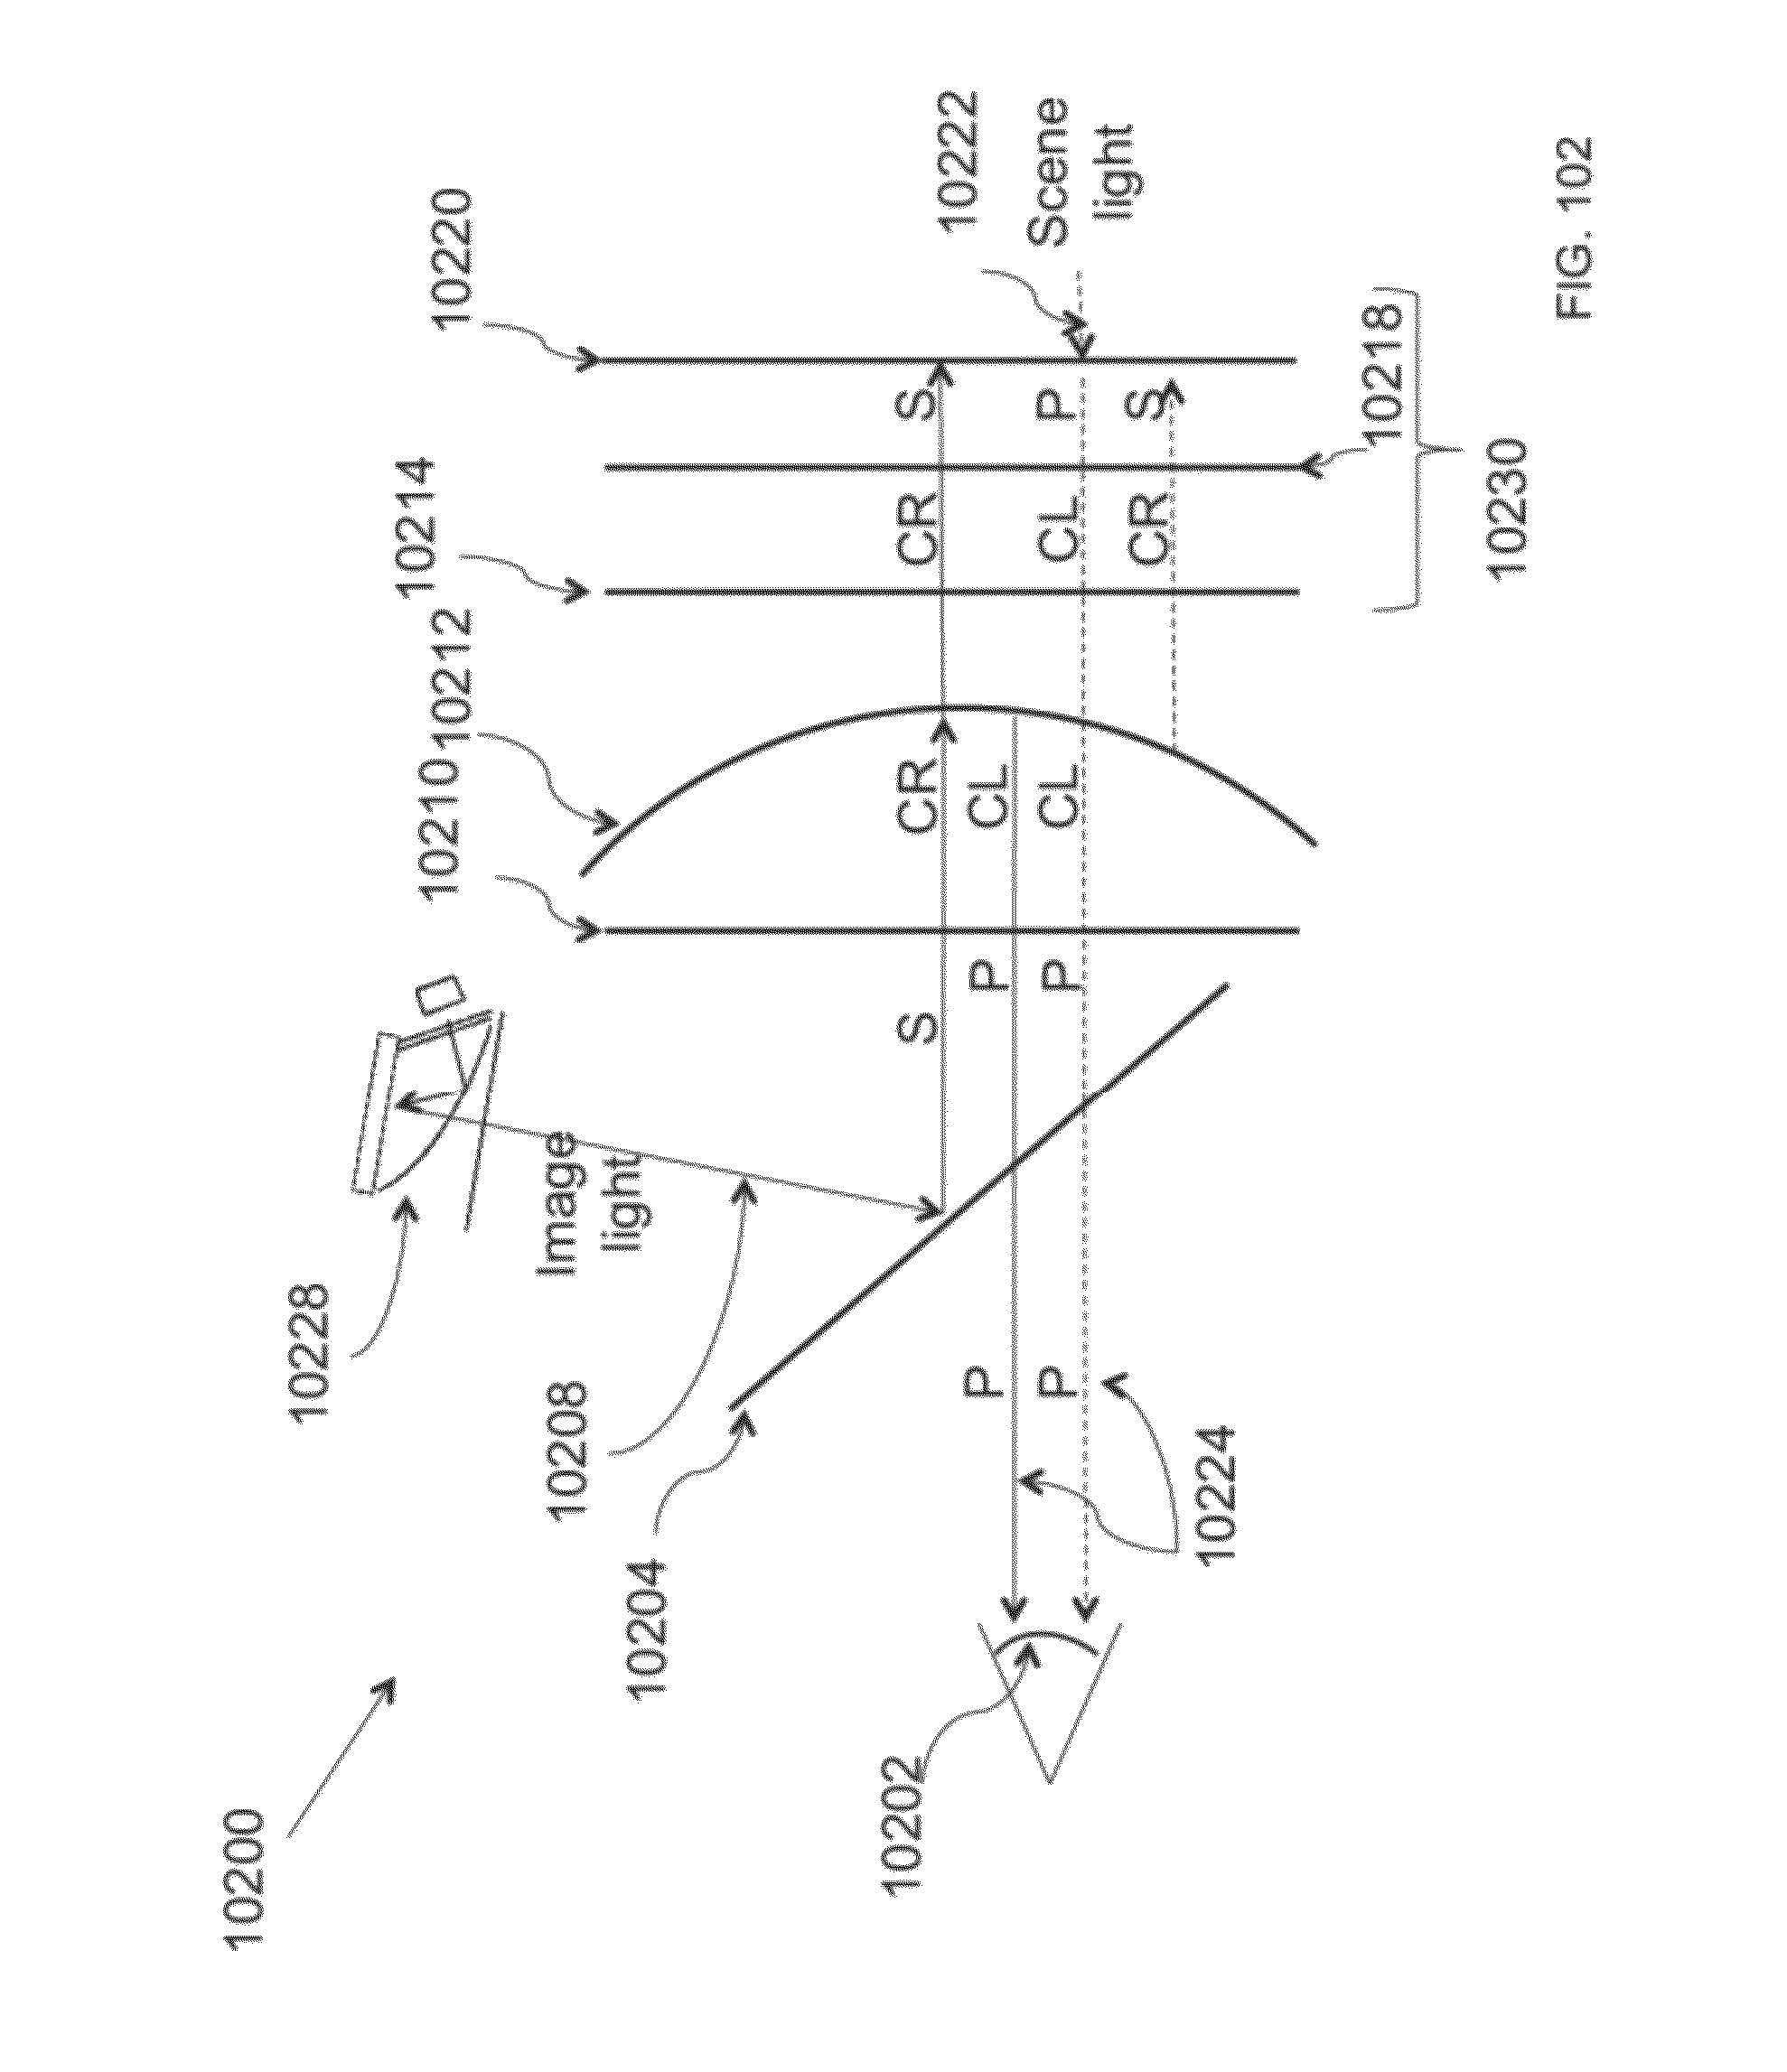 Patent Us 8482859 B2 Details About Disposable Camera Flash Circuit Module High Voltage Images